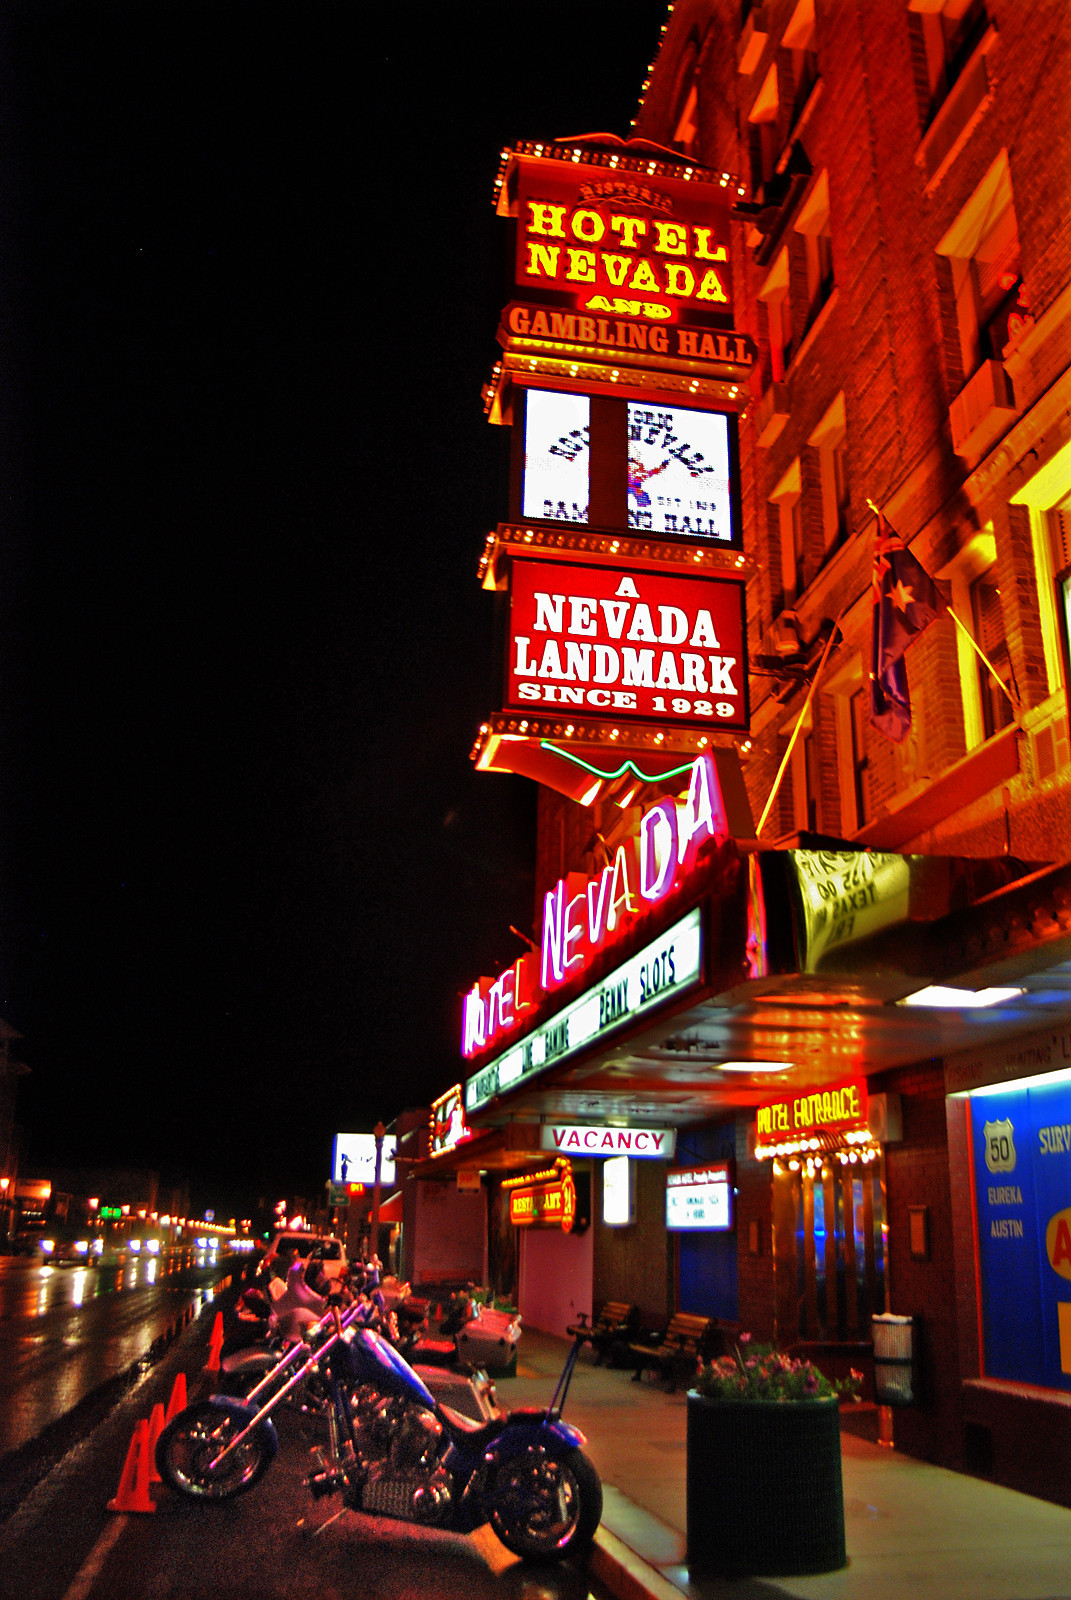 Weekend Escape: Ely, Nevada - Hotel Nevada & Gambling Hall